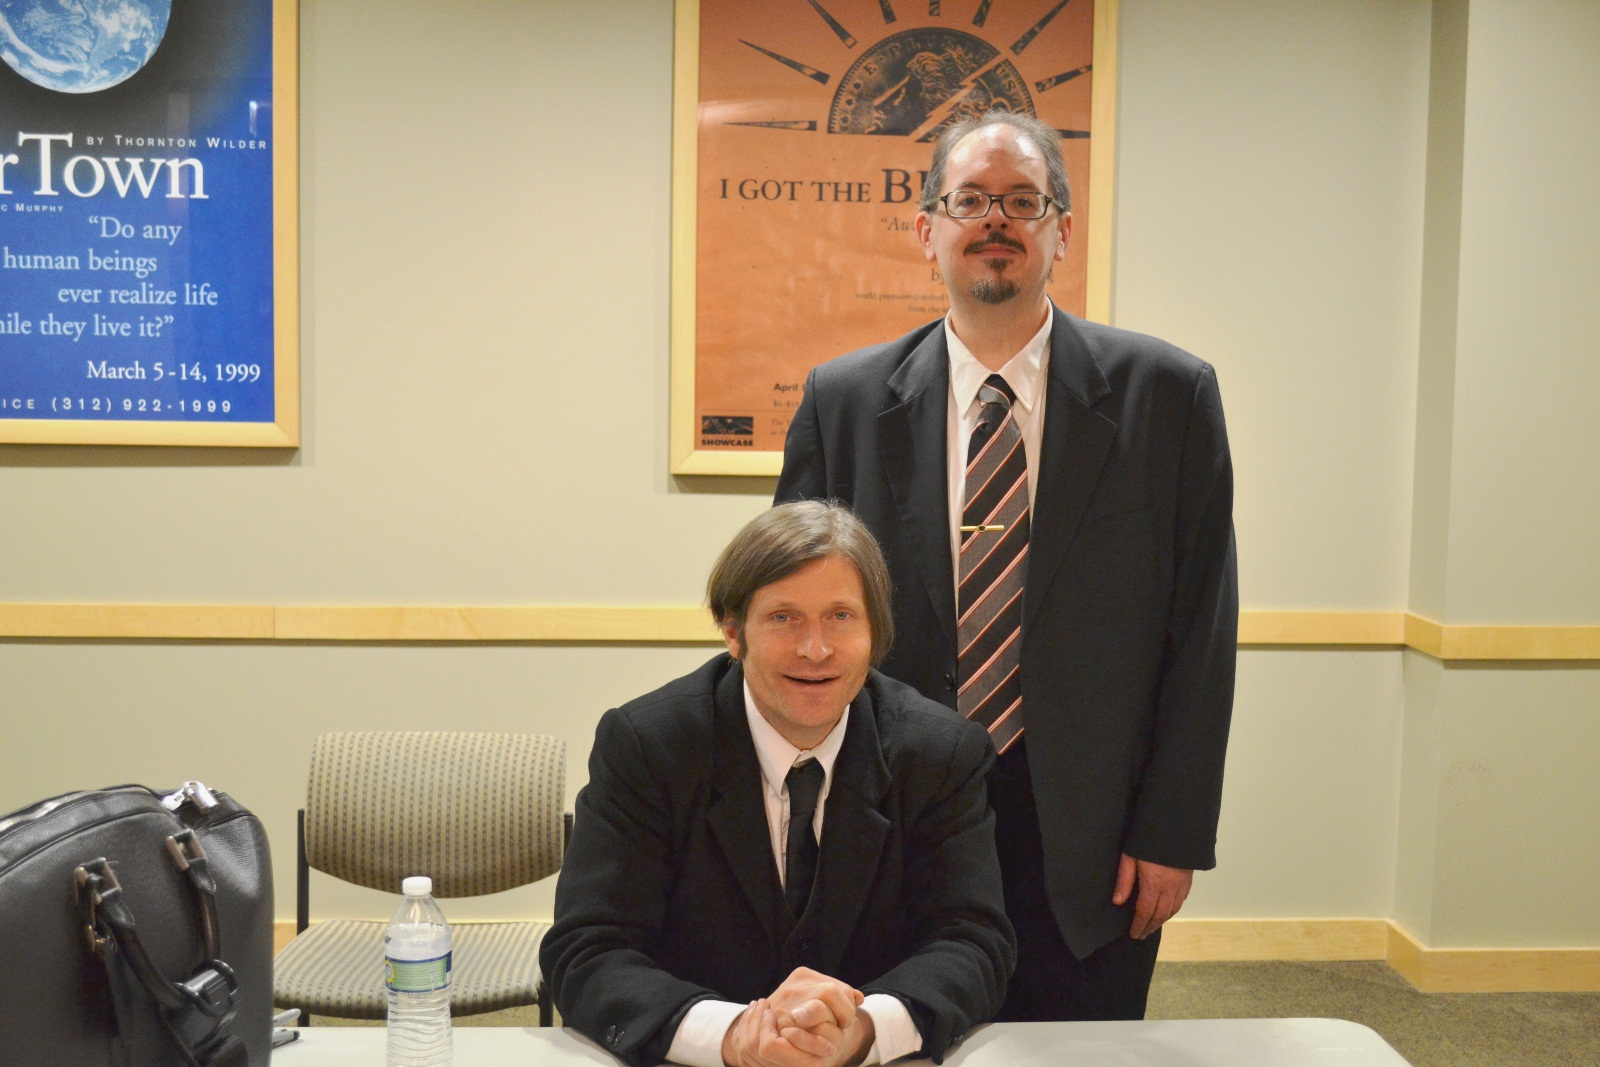 Crispin Glover and H. Peter Steeves